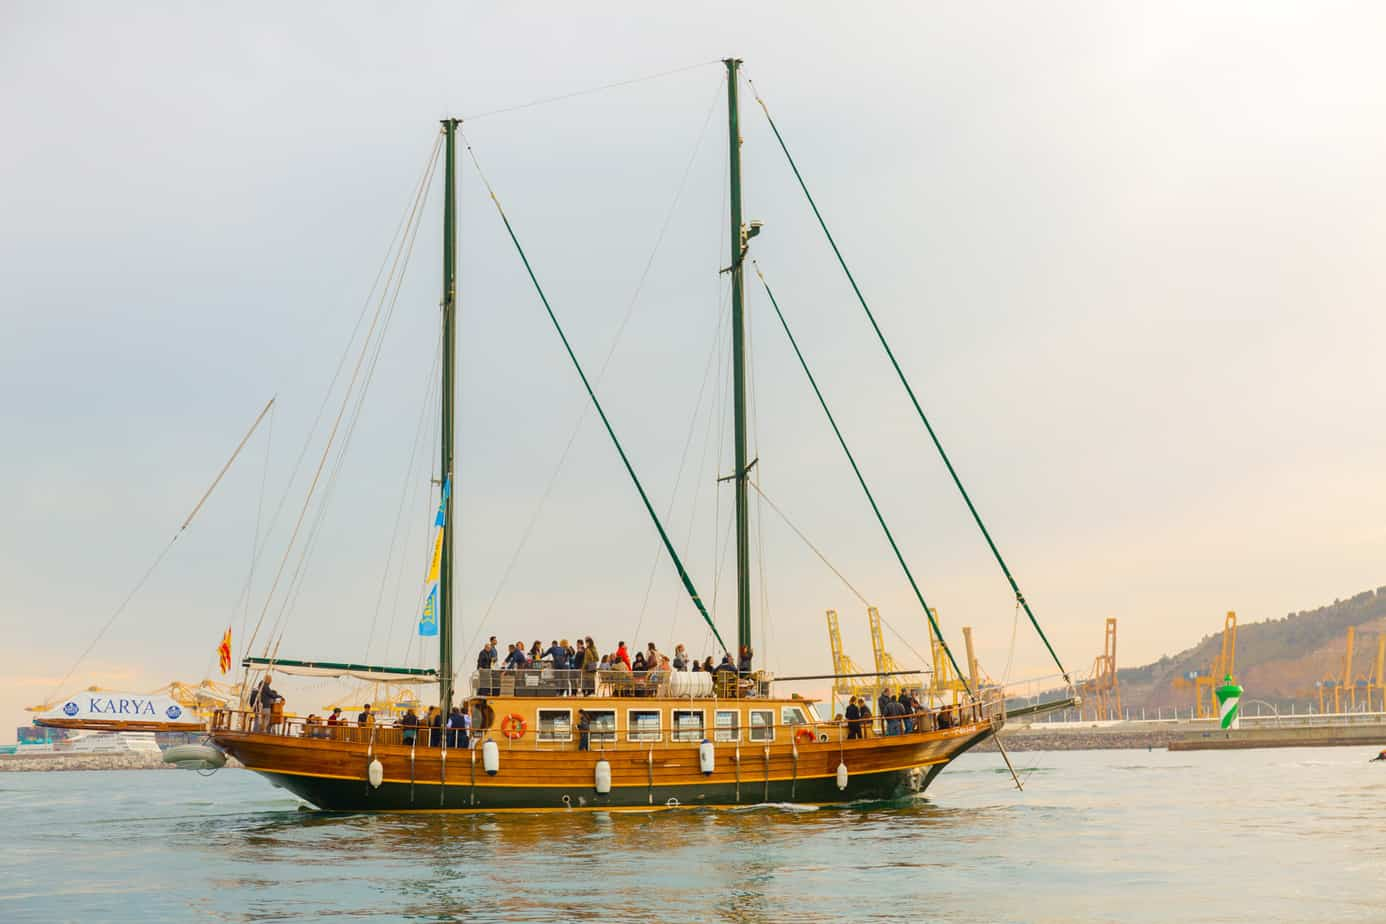 The Wooden Boat Tour